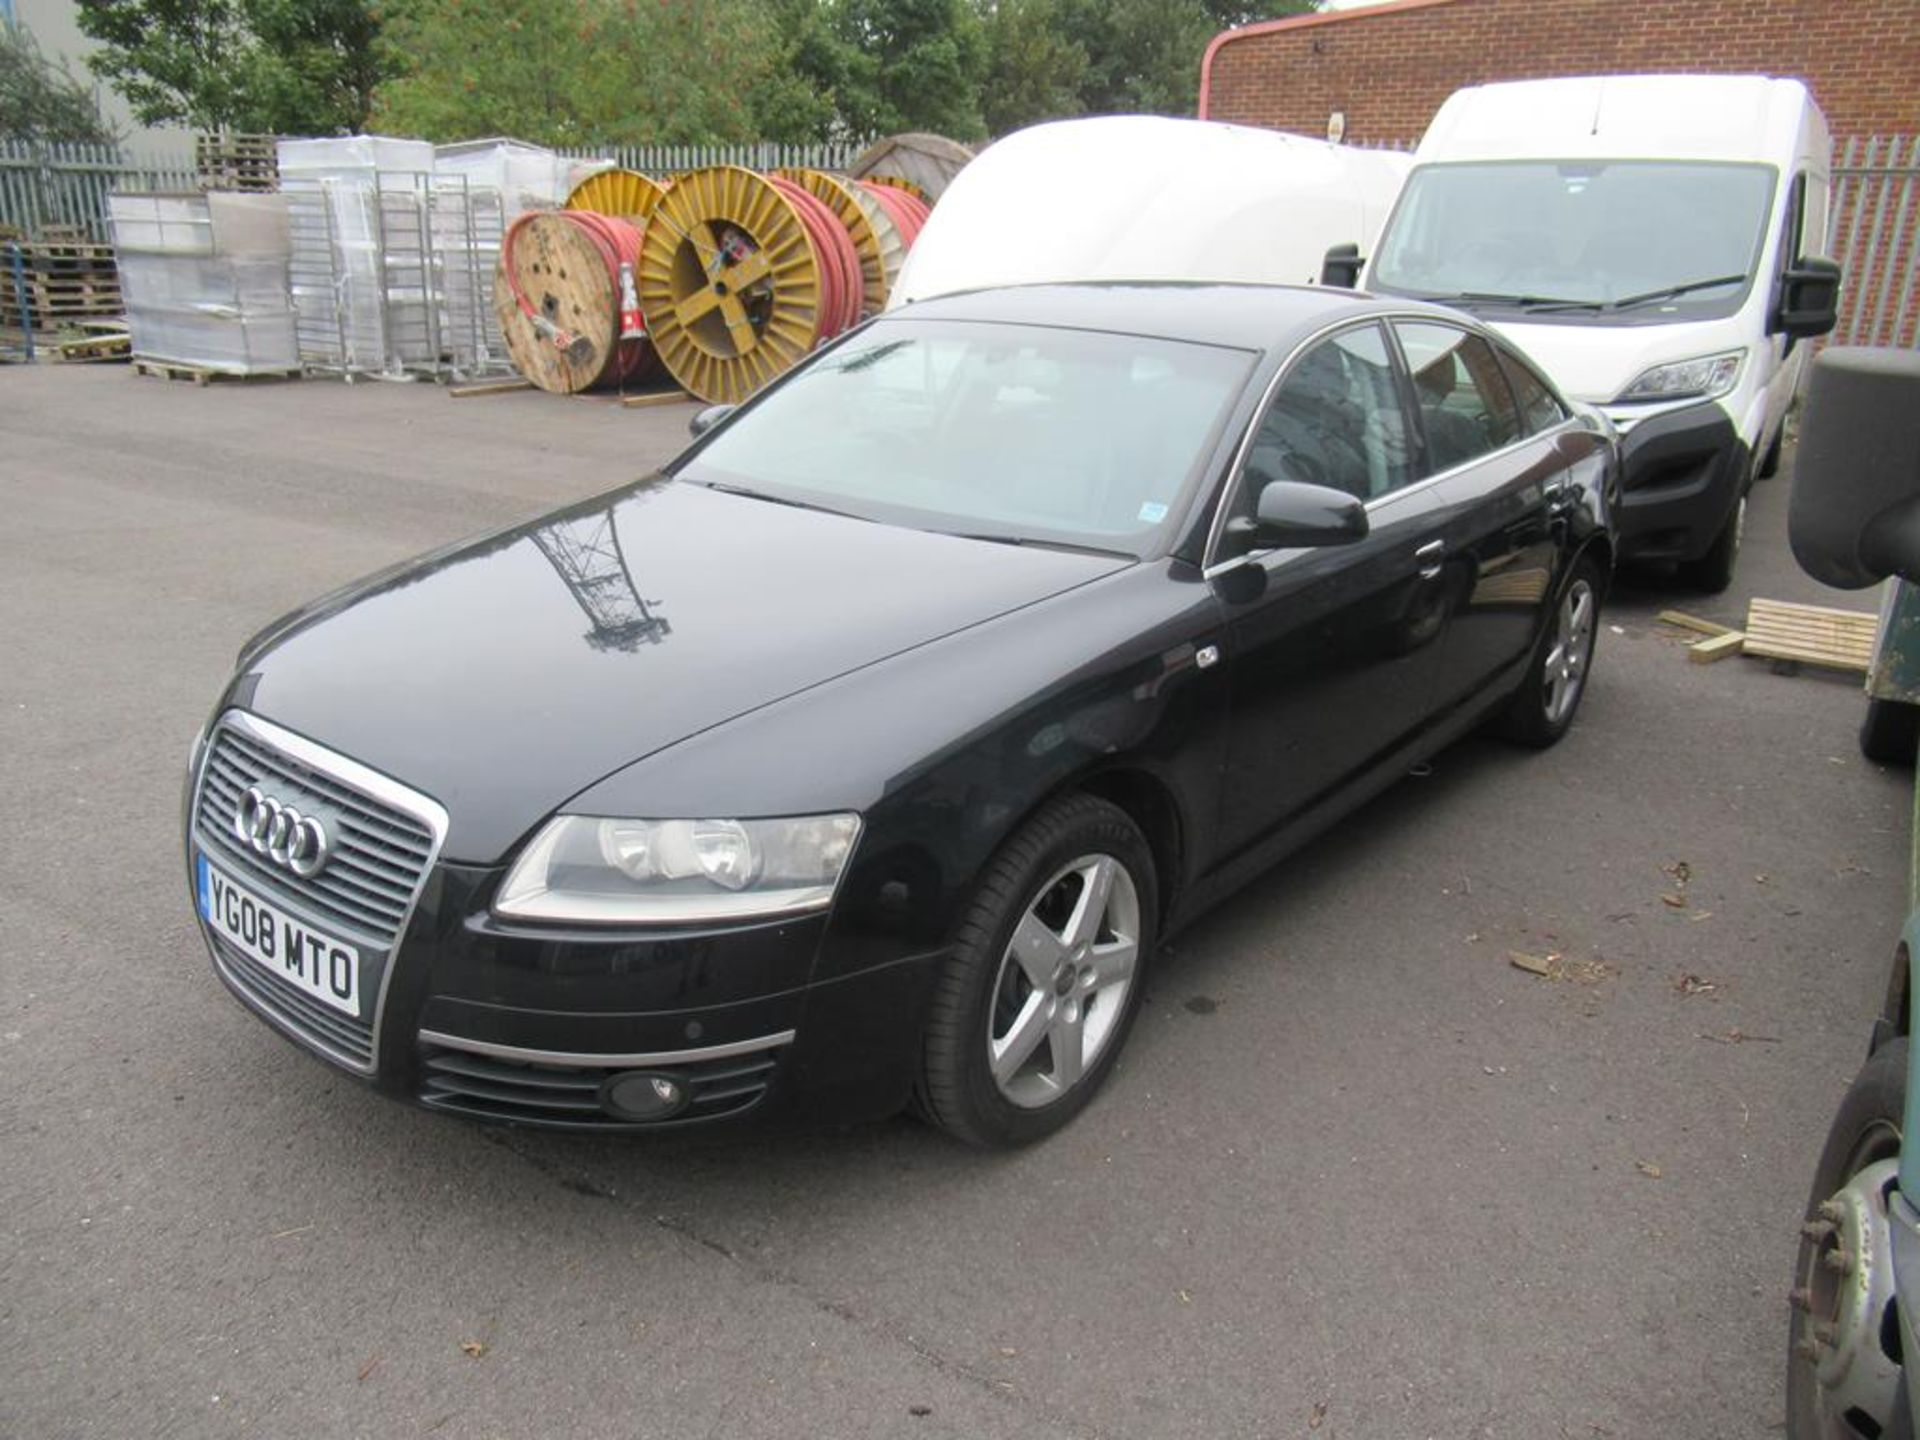 Audi A6 2.7TDI automatic with SatNav and bluetooth - Image 7 of 16